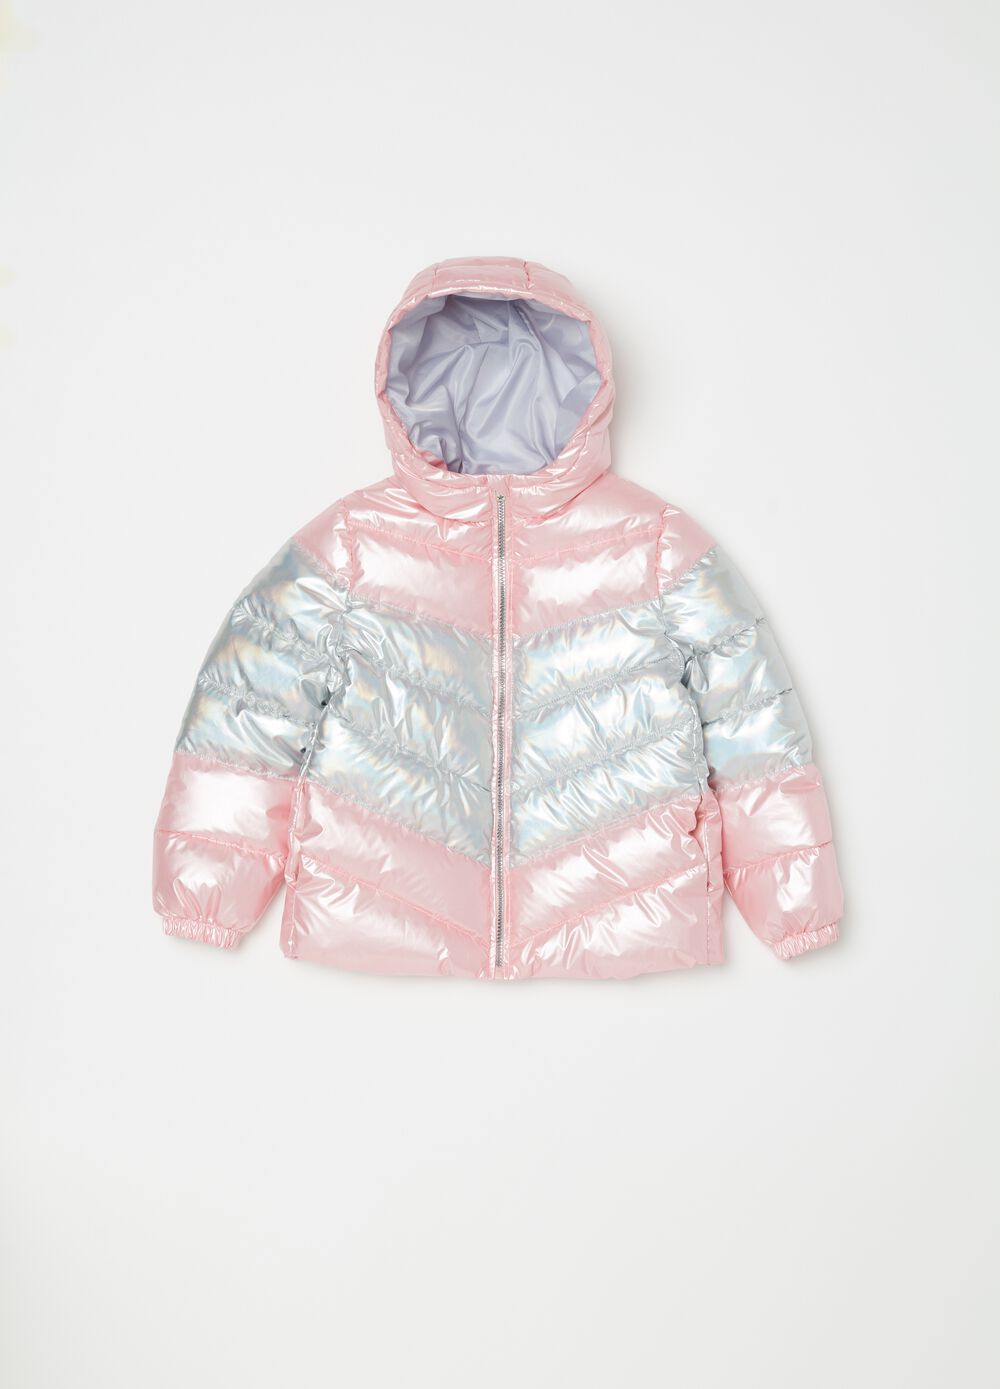 Two-tone padded and quilted jacket.